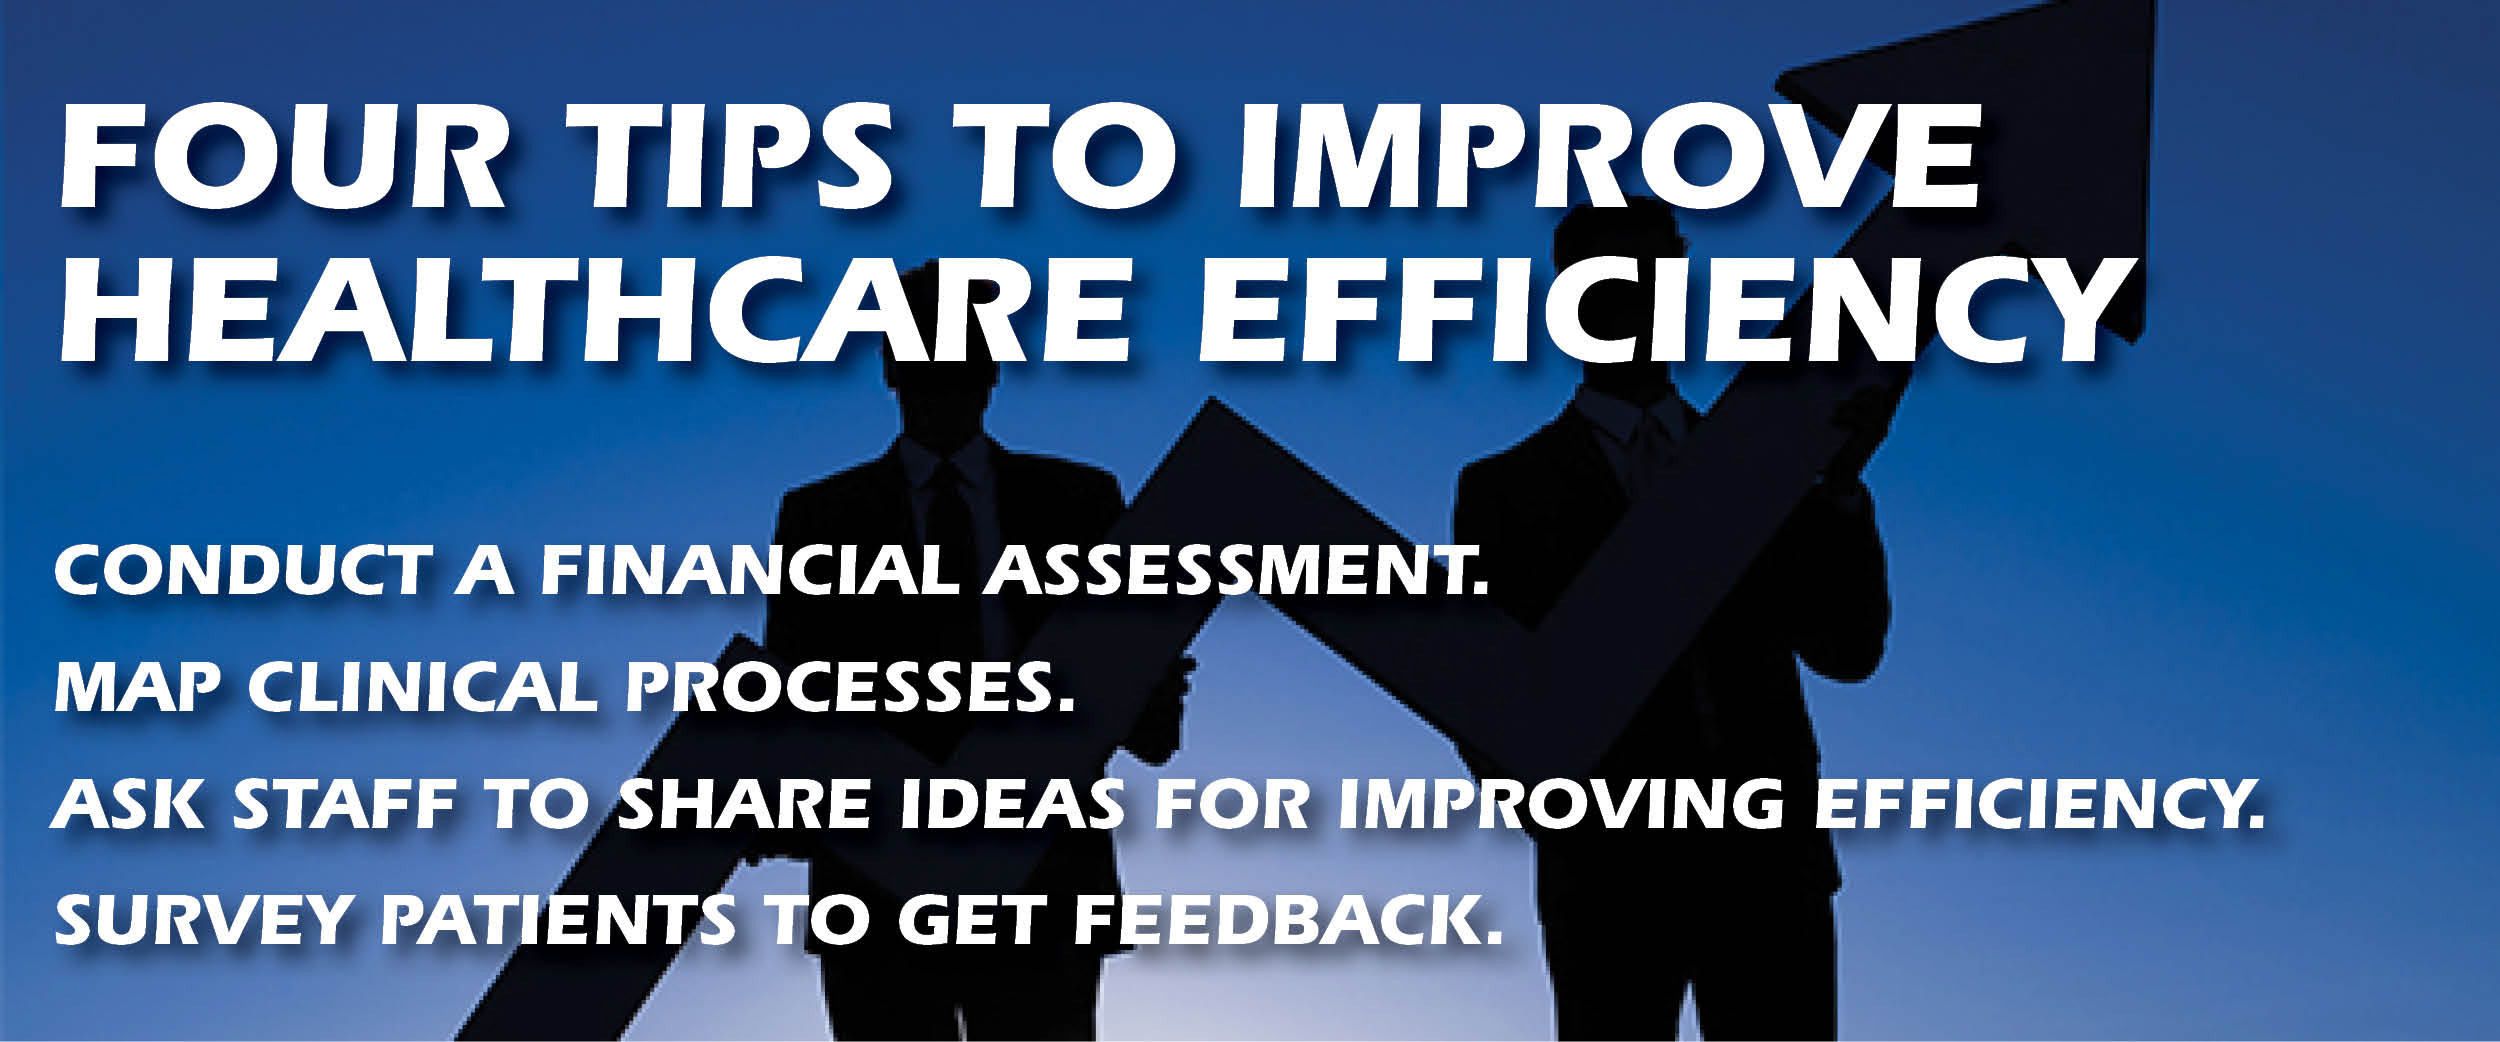 Four Tips to Improve Healthcare.jpg